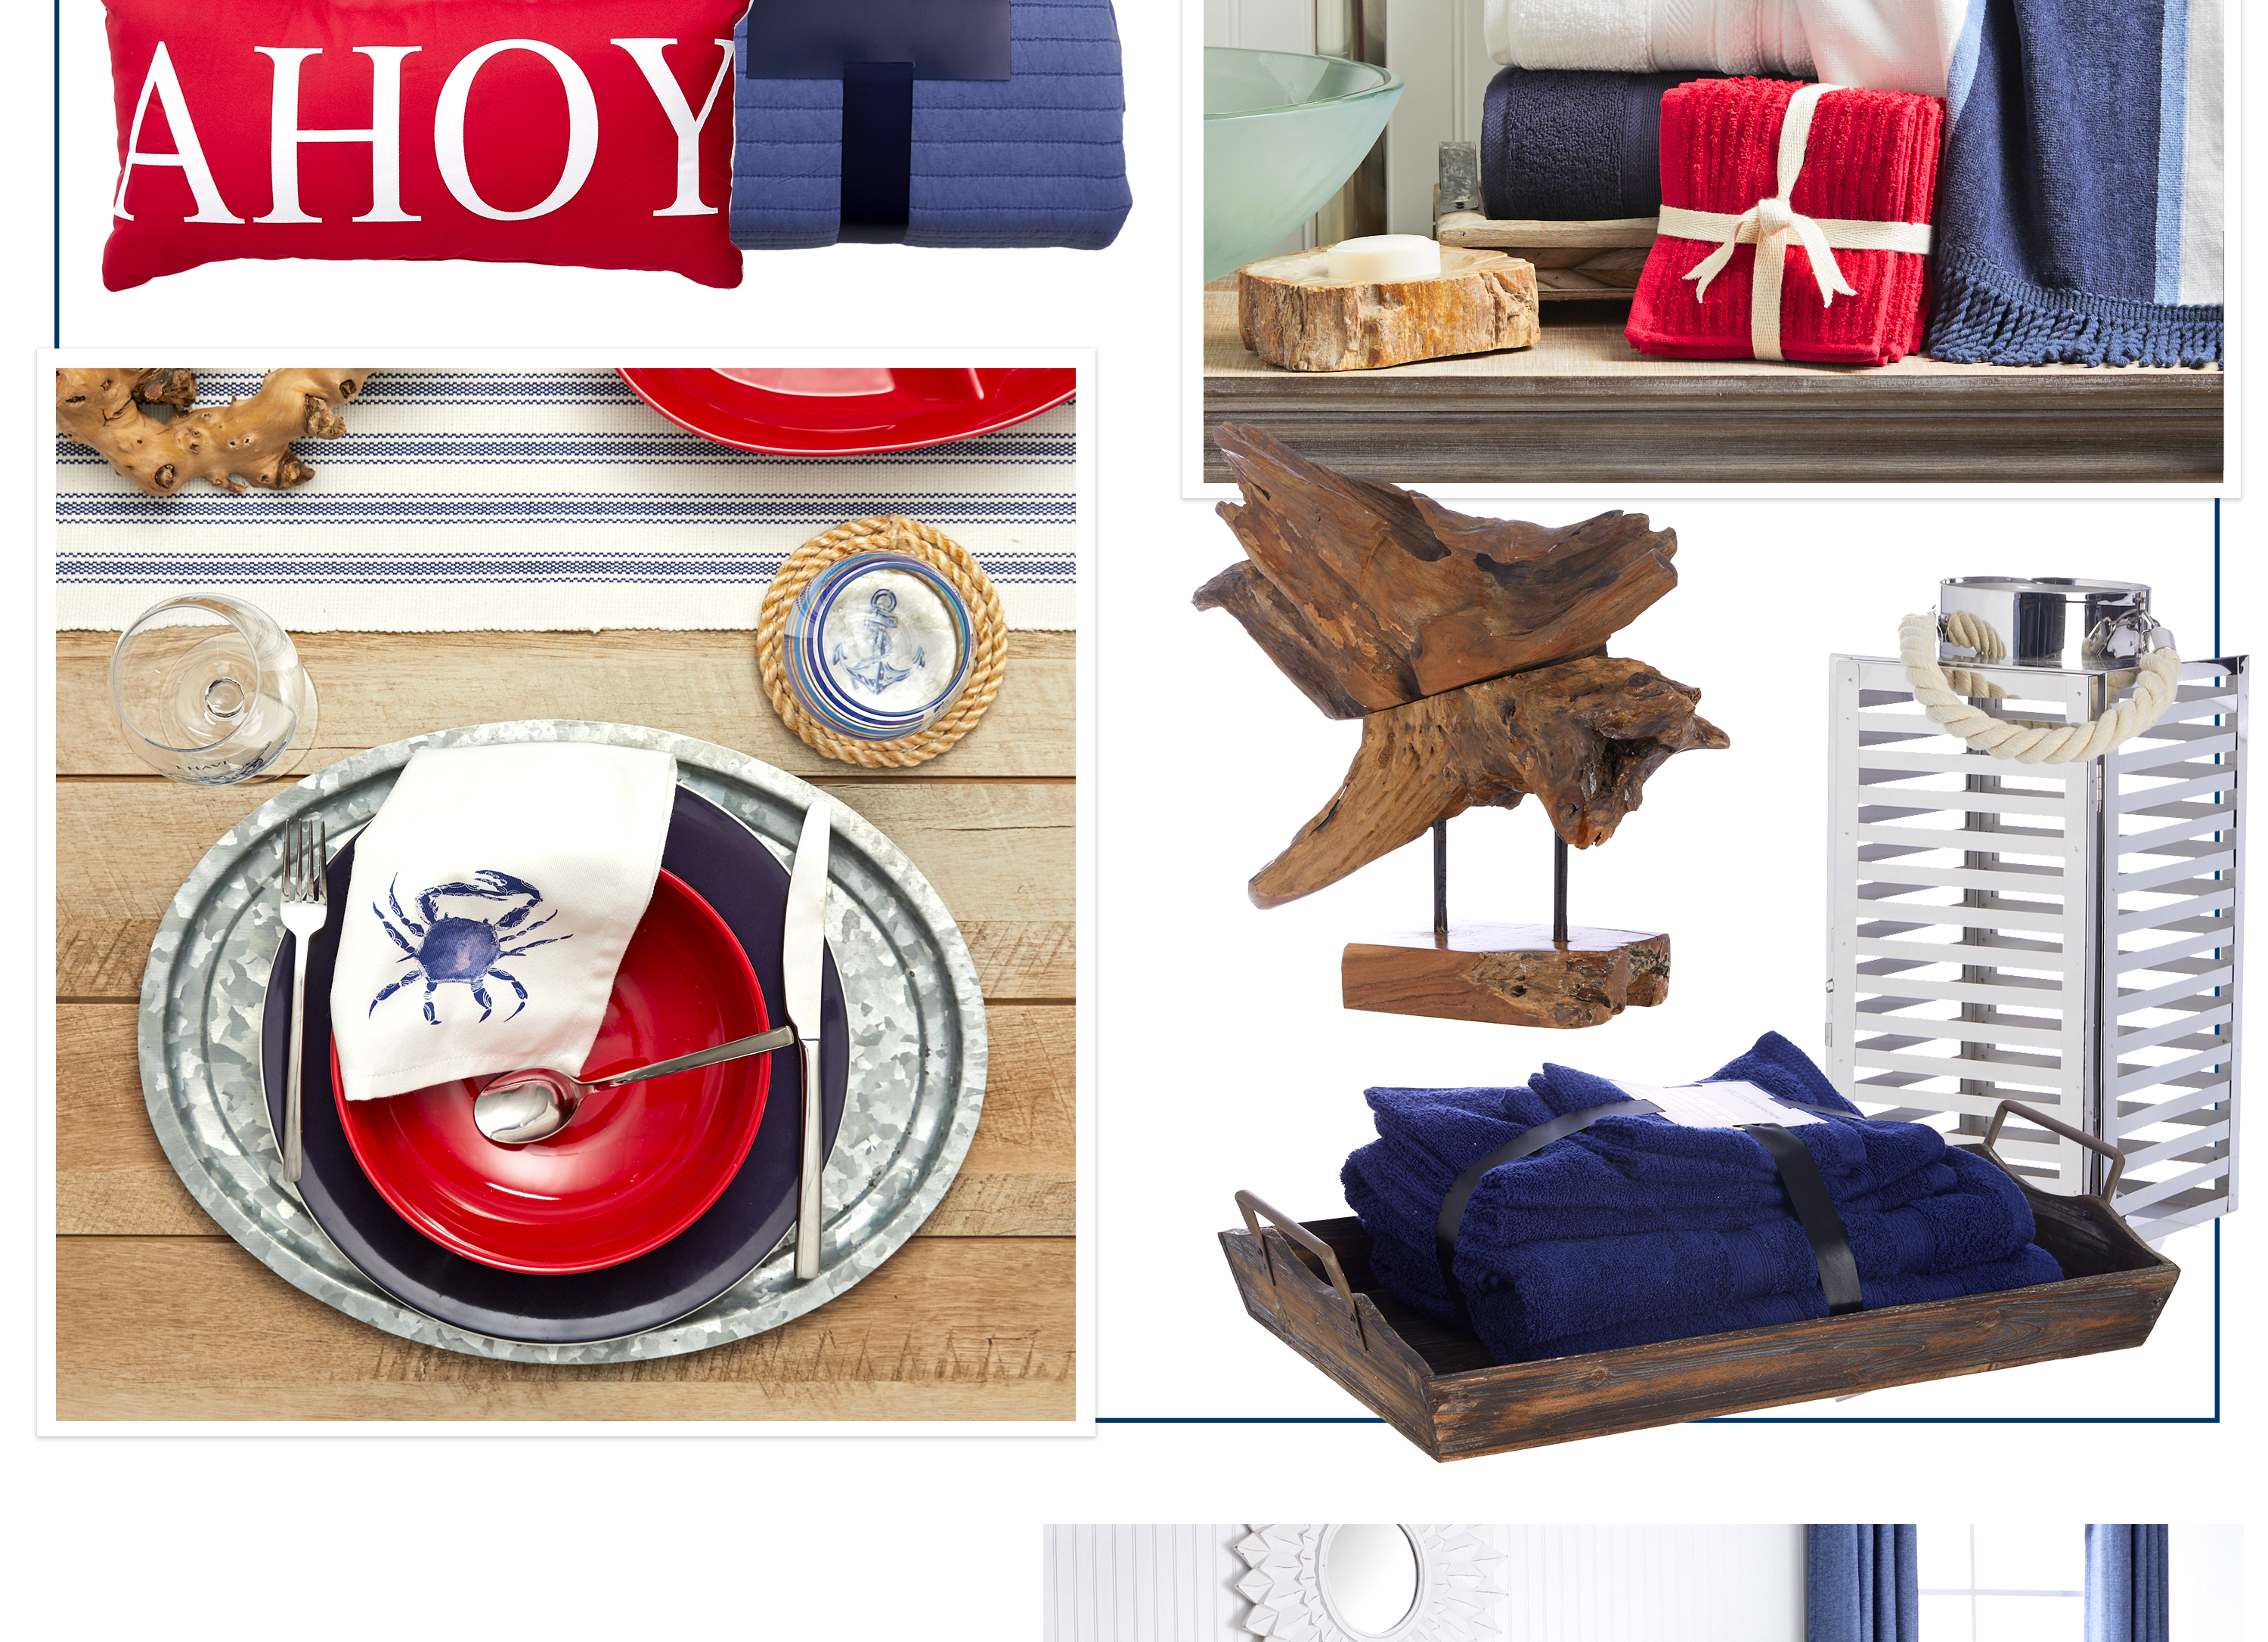 Nautical - Get ready for a new adventure with coastal elements accented with red, white and blue. Mai Tais optional.